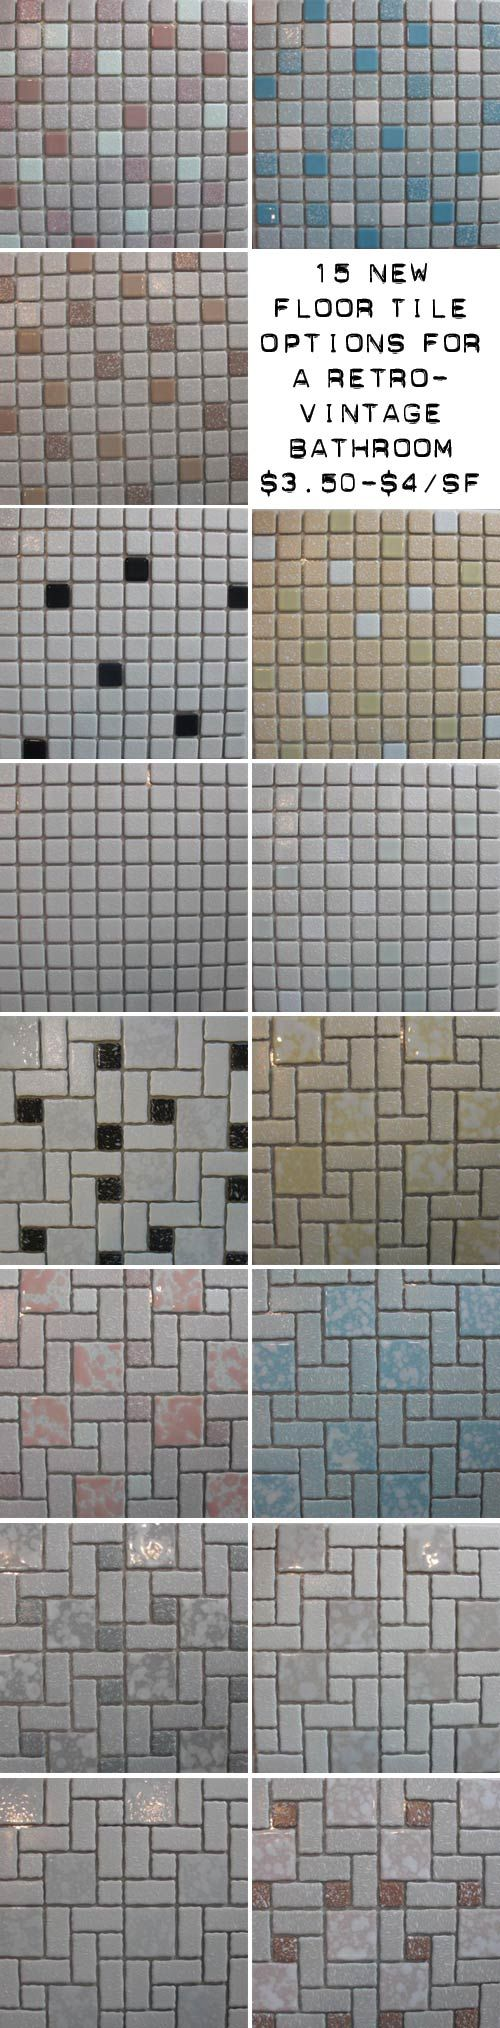 15 new mosaic floor tile designs for a retro vintage style 15 new mosaic floor tile designs for a retro vintage style bathroom dailygadgetfo Images